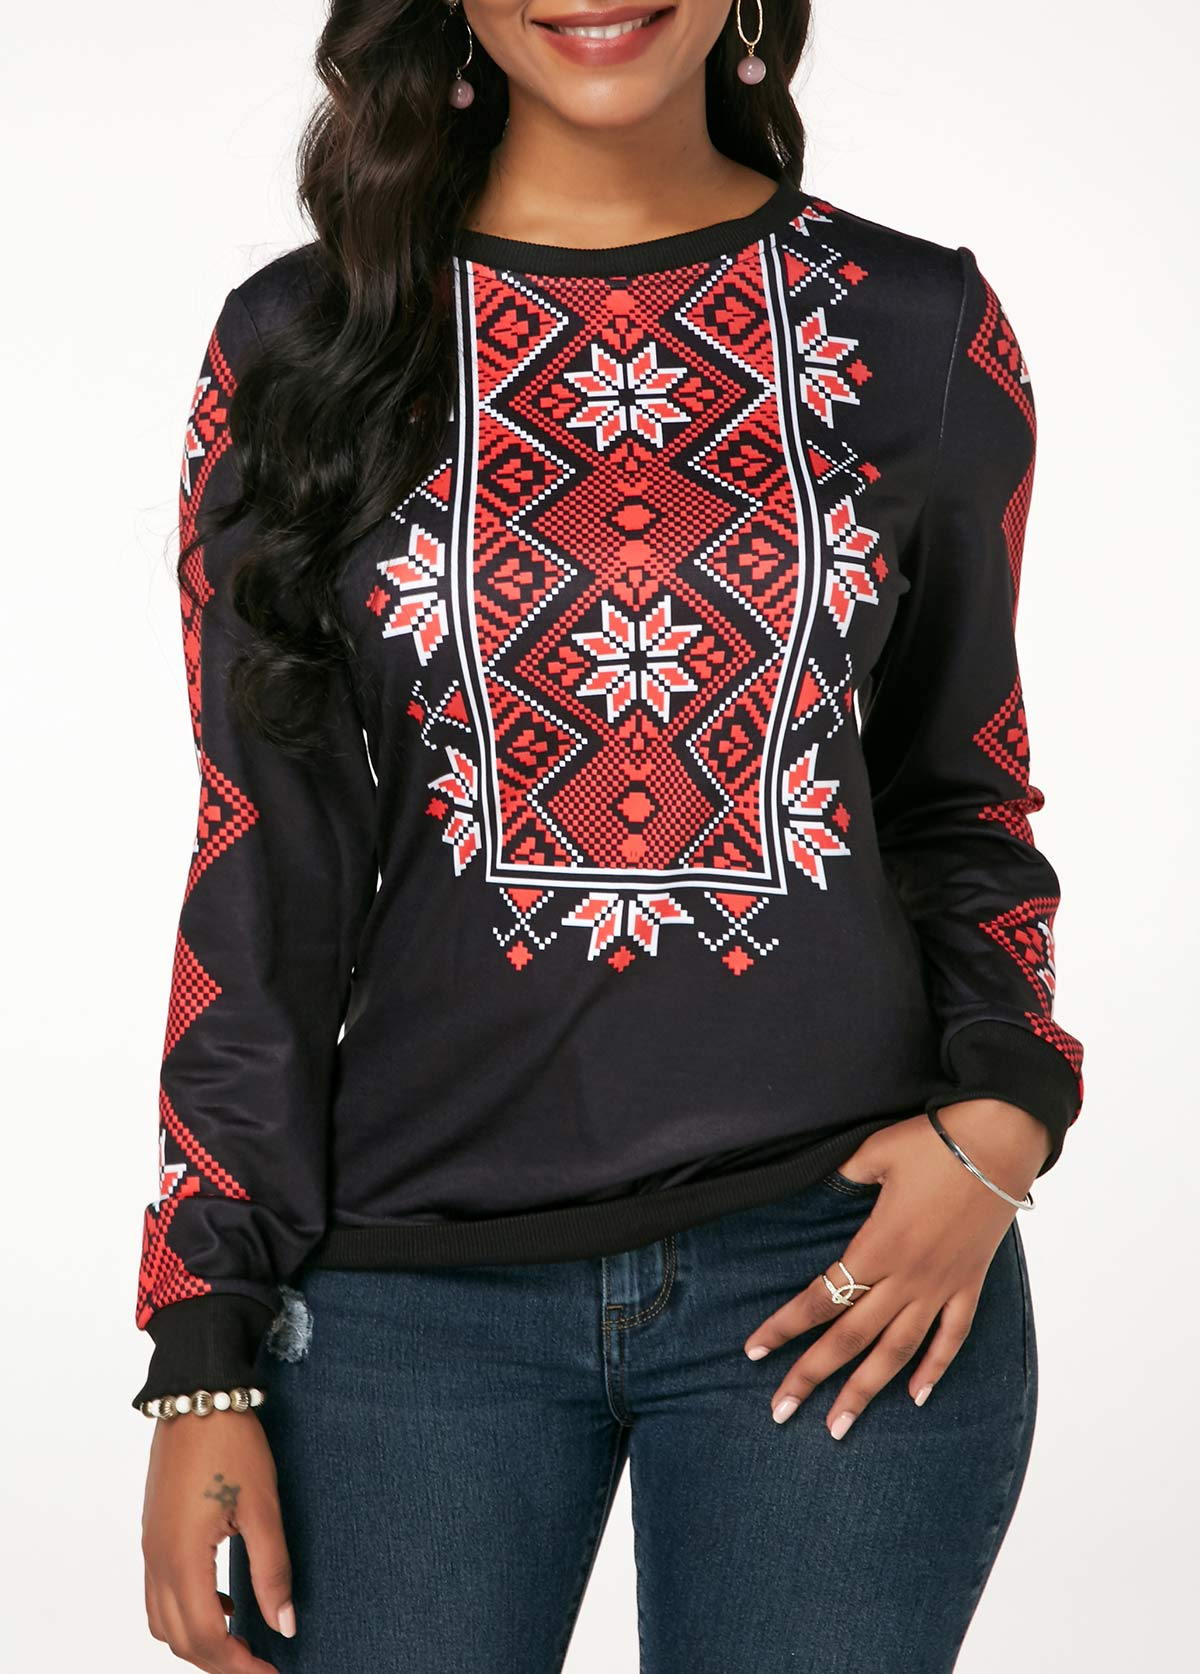 Printed Round Neck Black Long Sleeve Sweatshirt